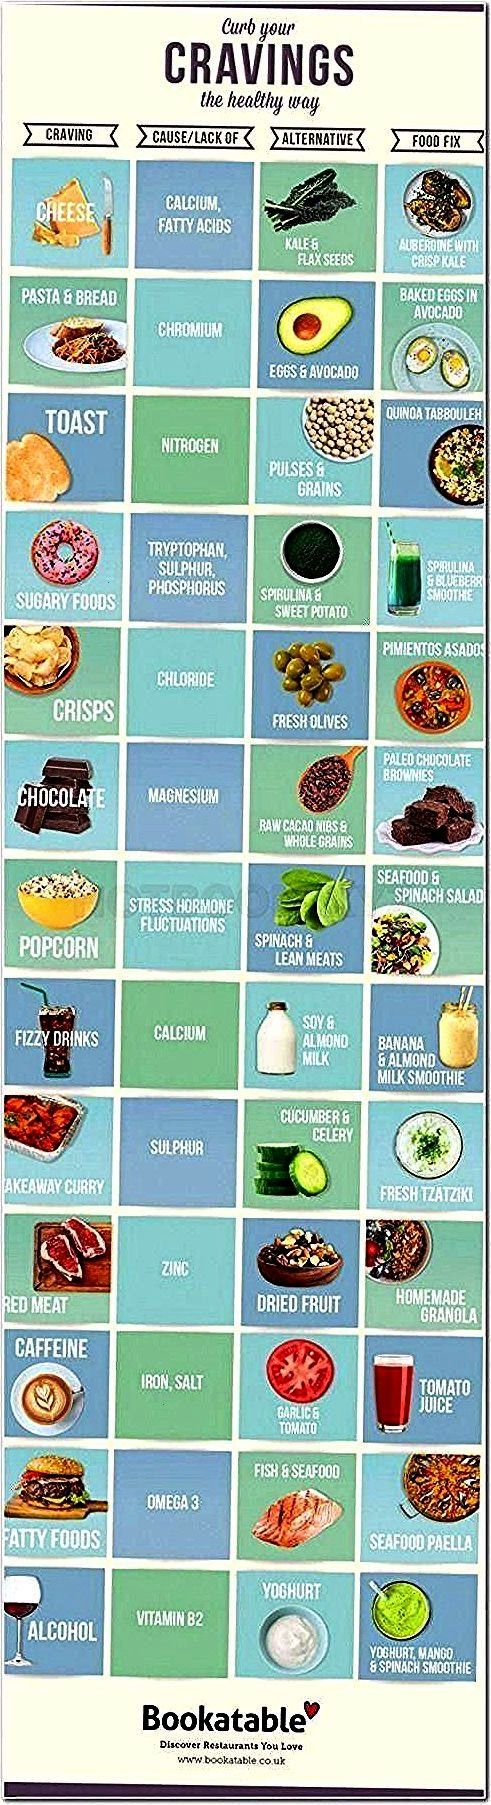 Vegan Fast Food simple  Vegan Fast Food  Personal Body Type Plan to Make Your Body Slimmer at Home Click to download the app on App Store now Related Article How to Get...